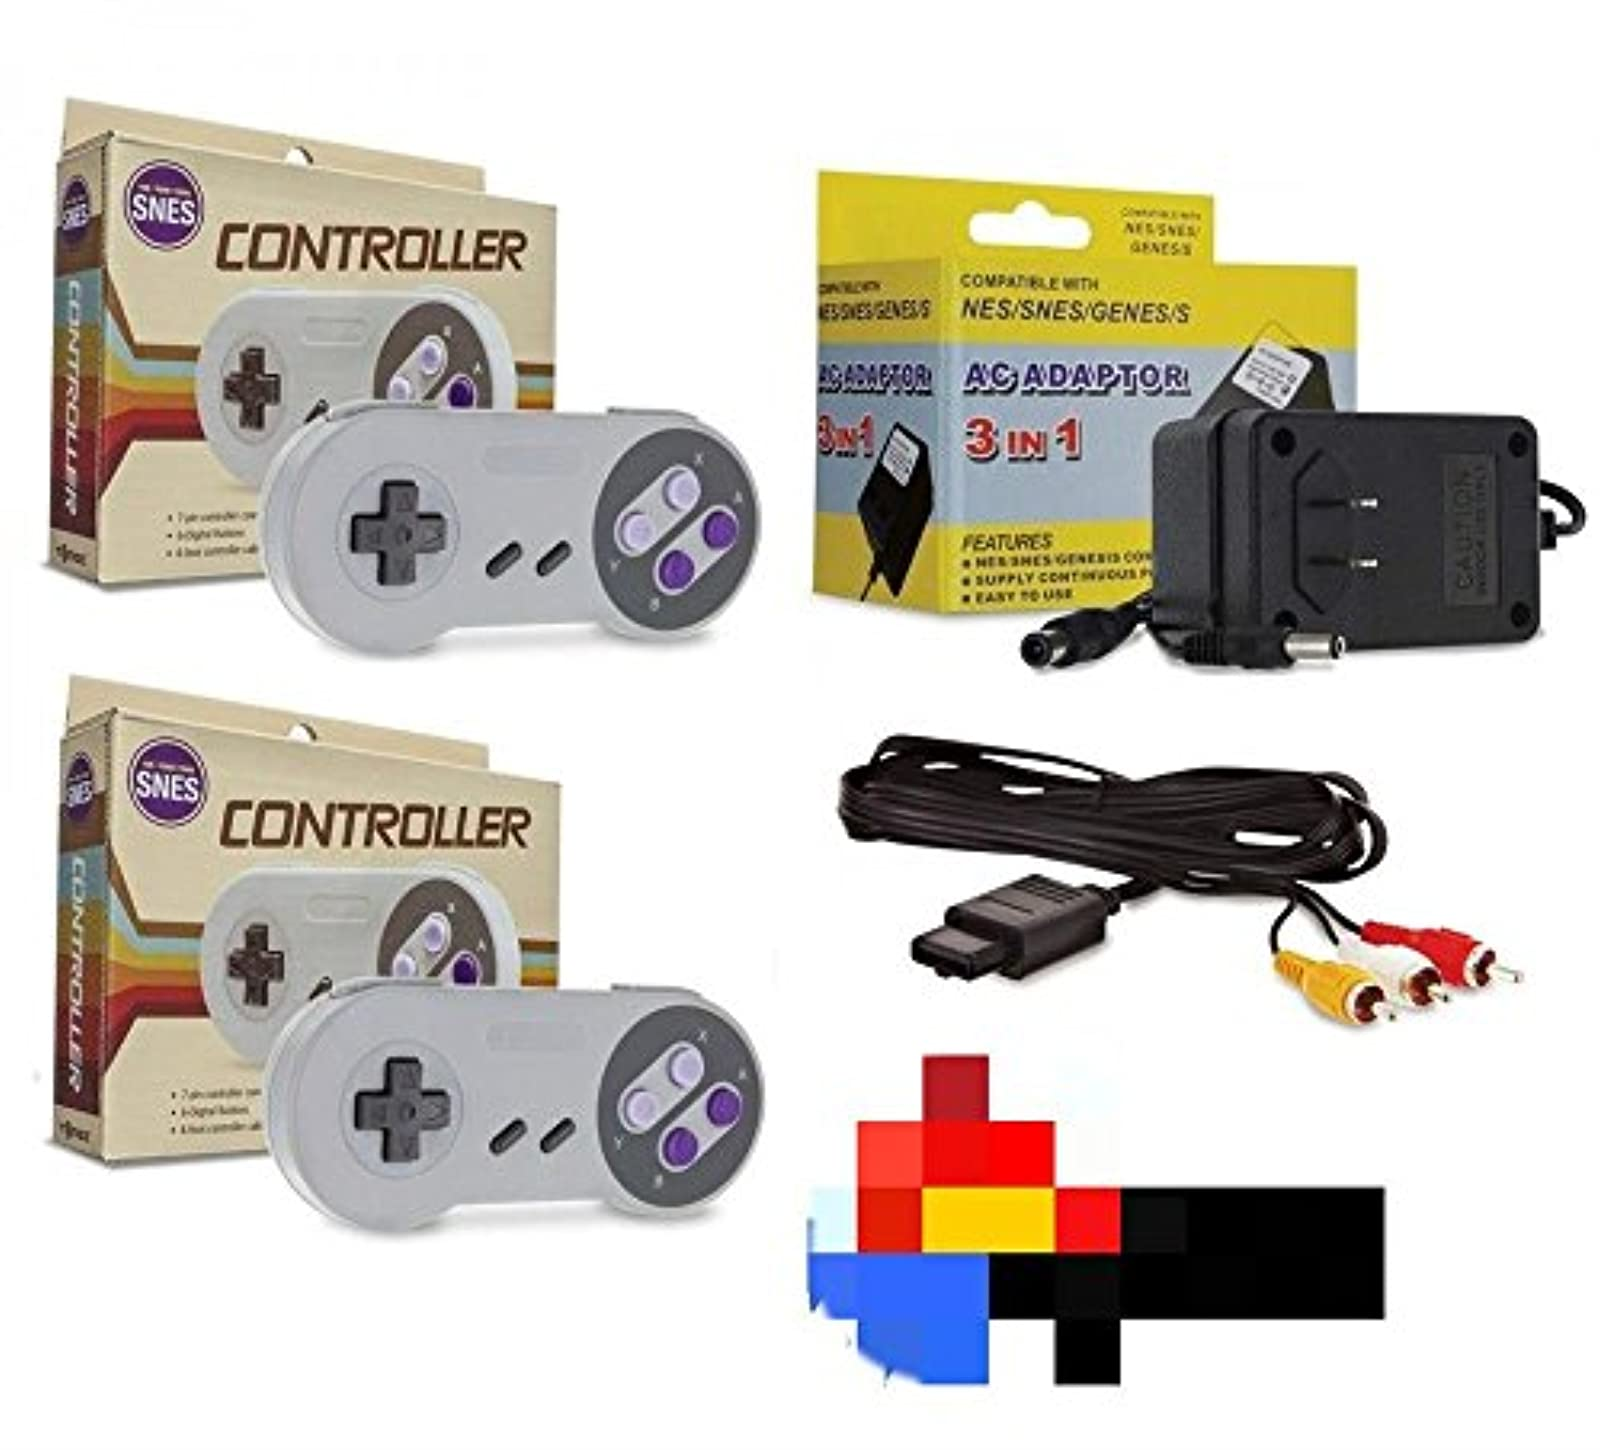 SNES Bundle 2 Controllers AC Adapter Power Cord And AV Cable Super Nintendo